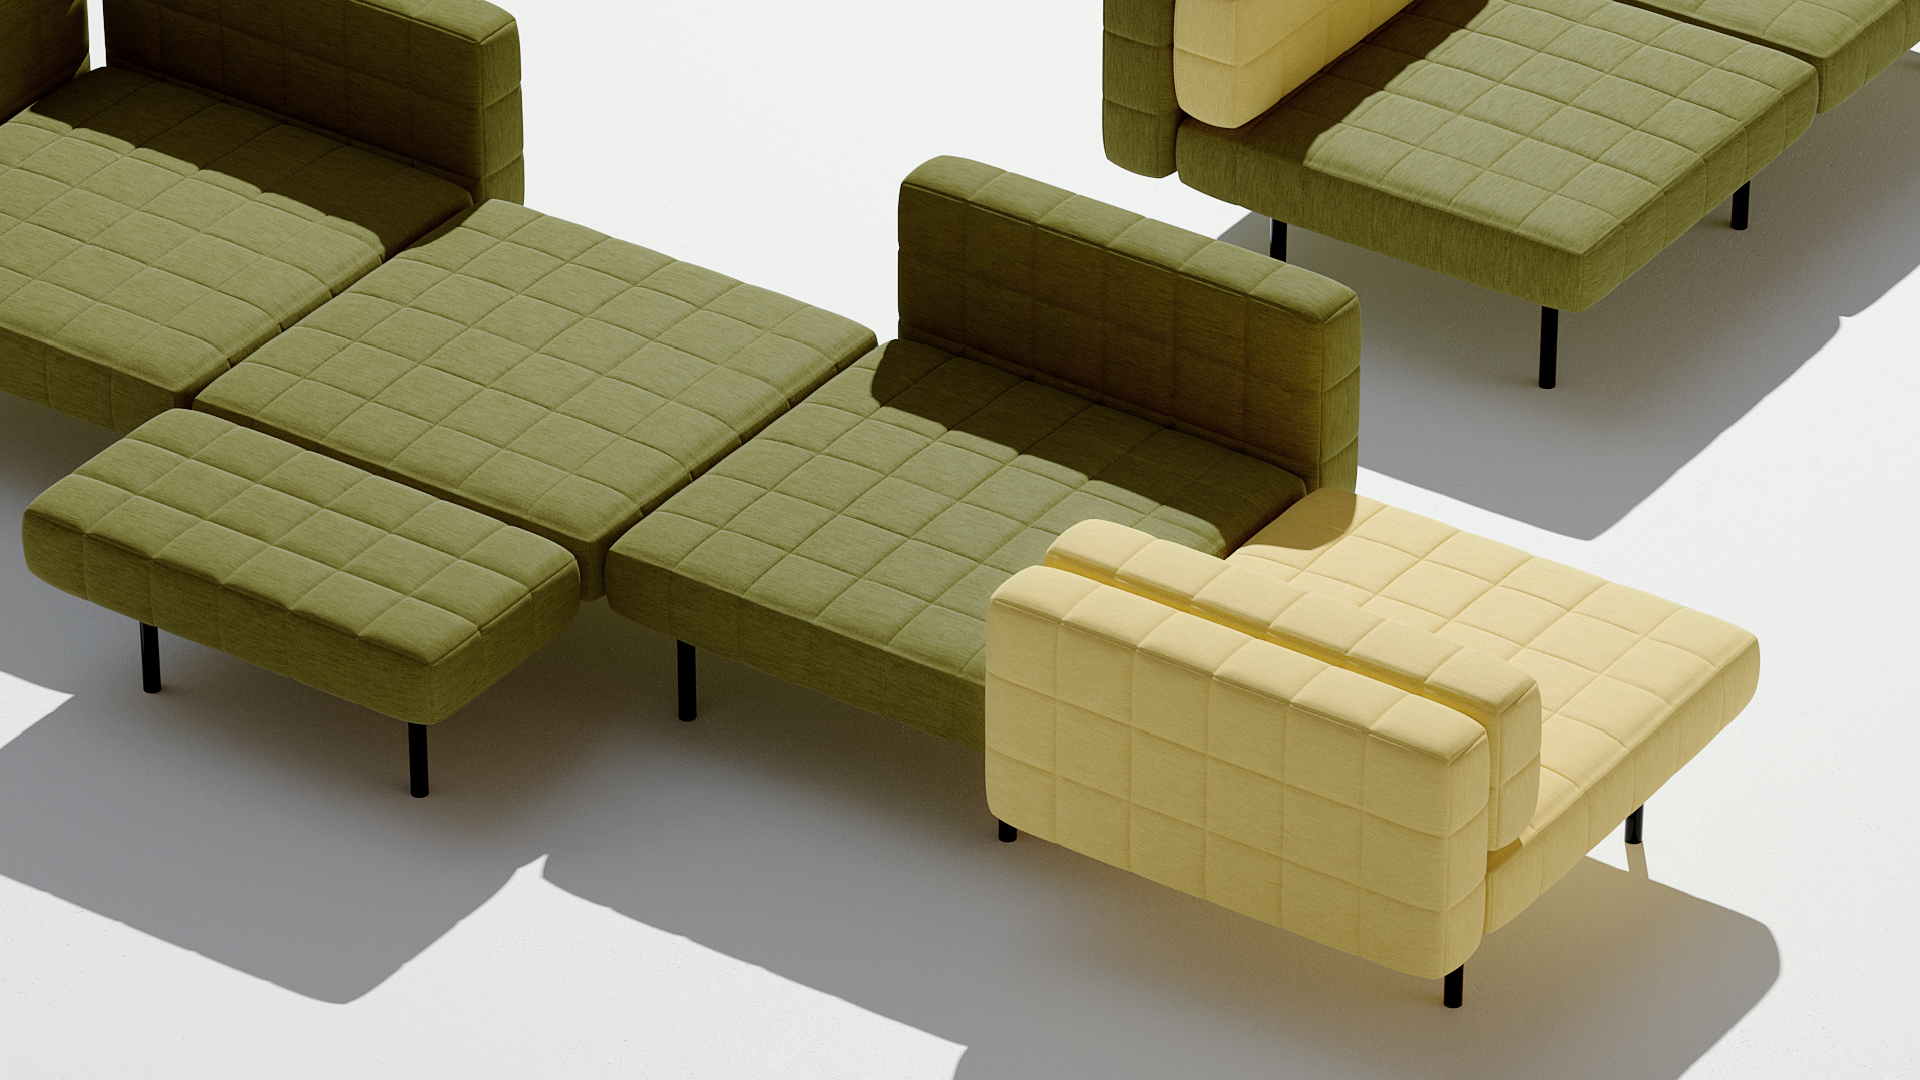 BIG ventures into furniture design with modular seating system, the Voxel Sofa | Voxel Sofa by BIG for Common Seating | STIRworld